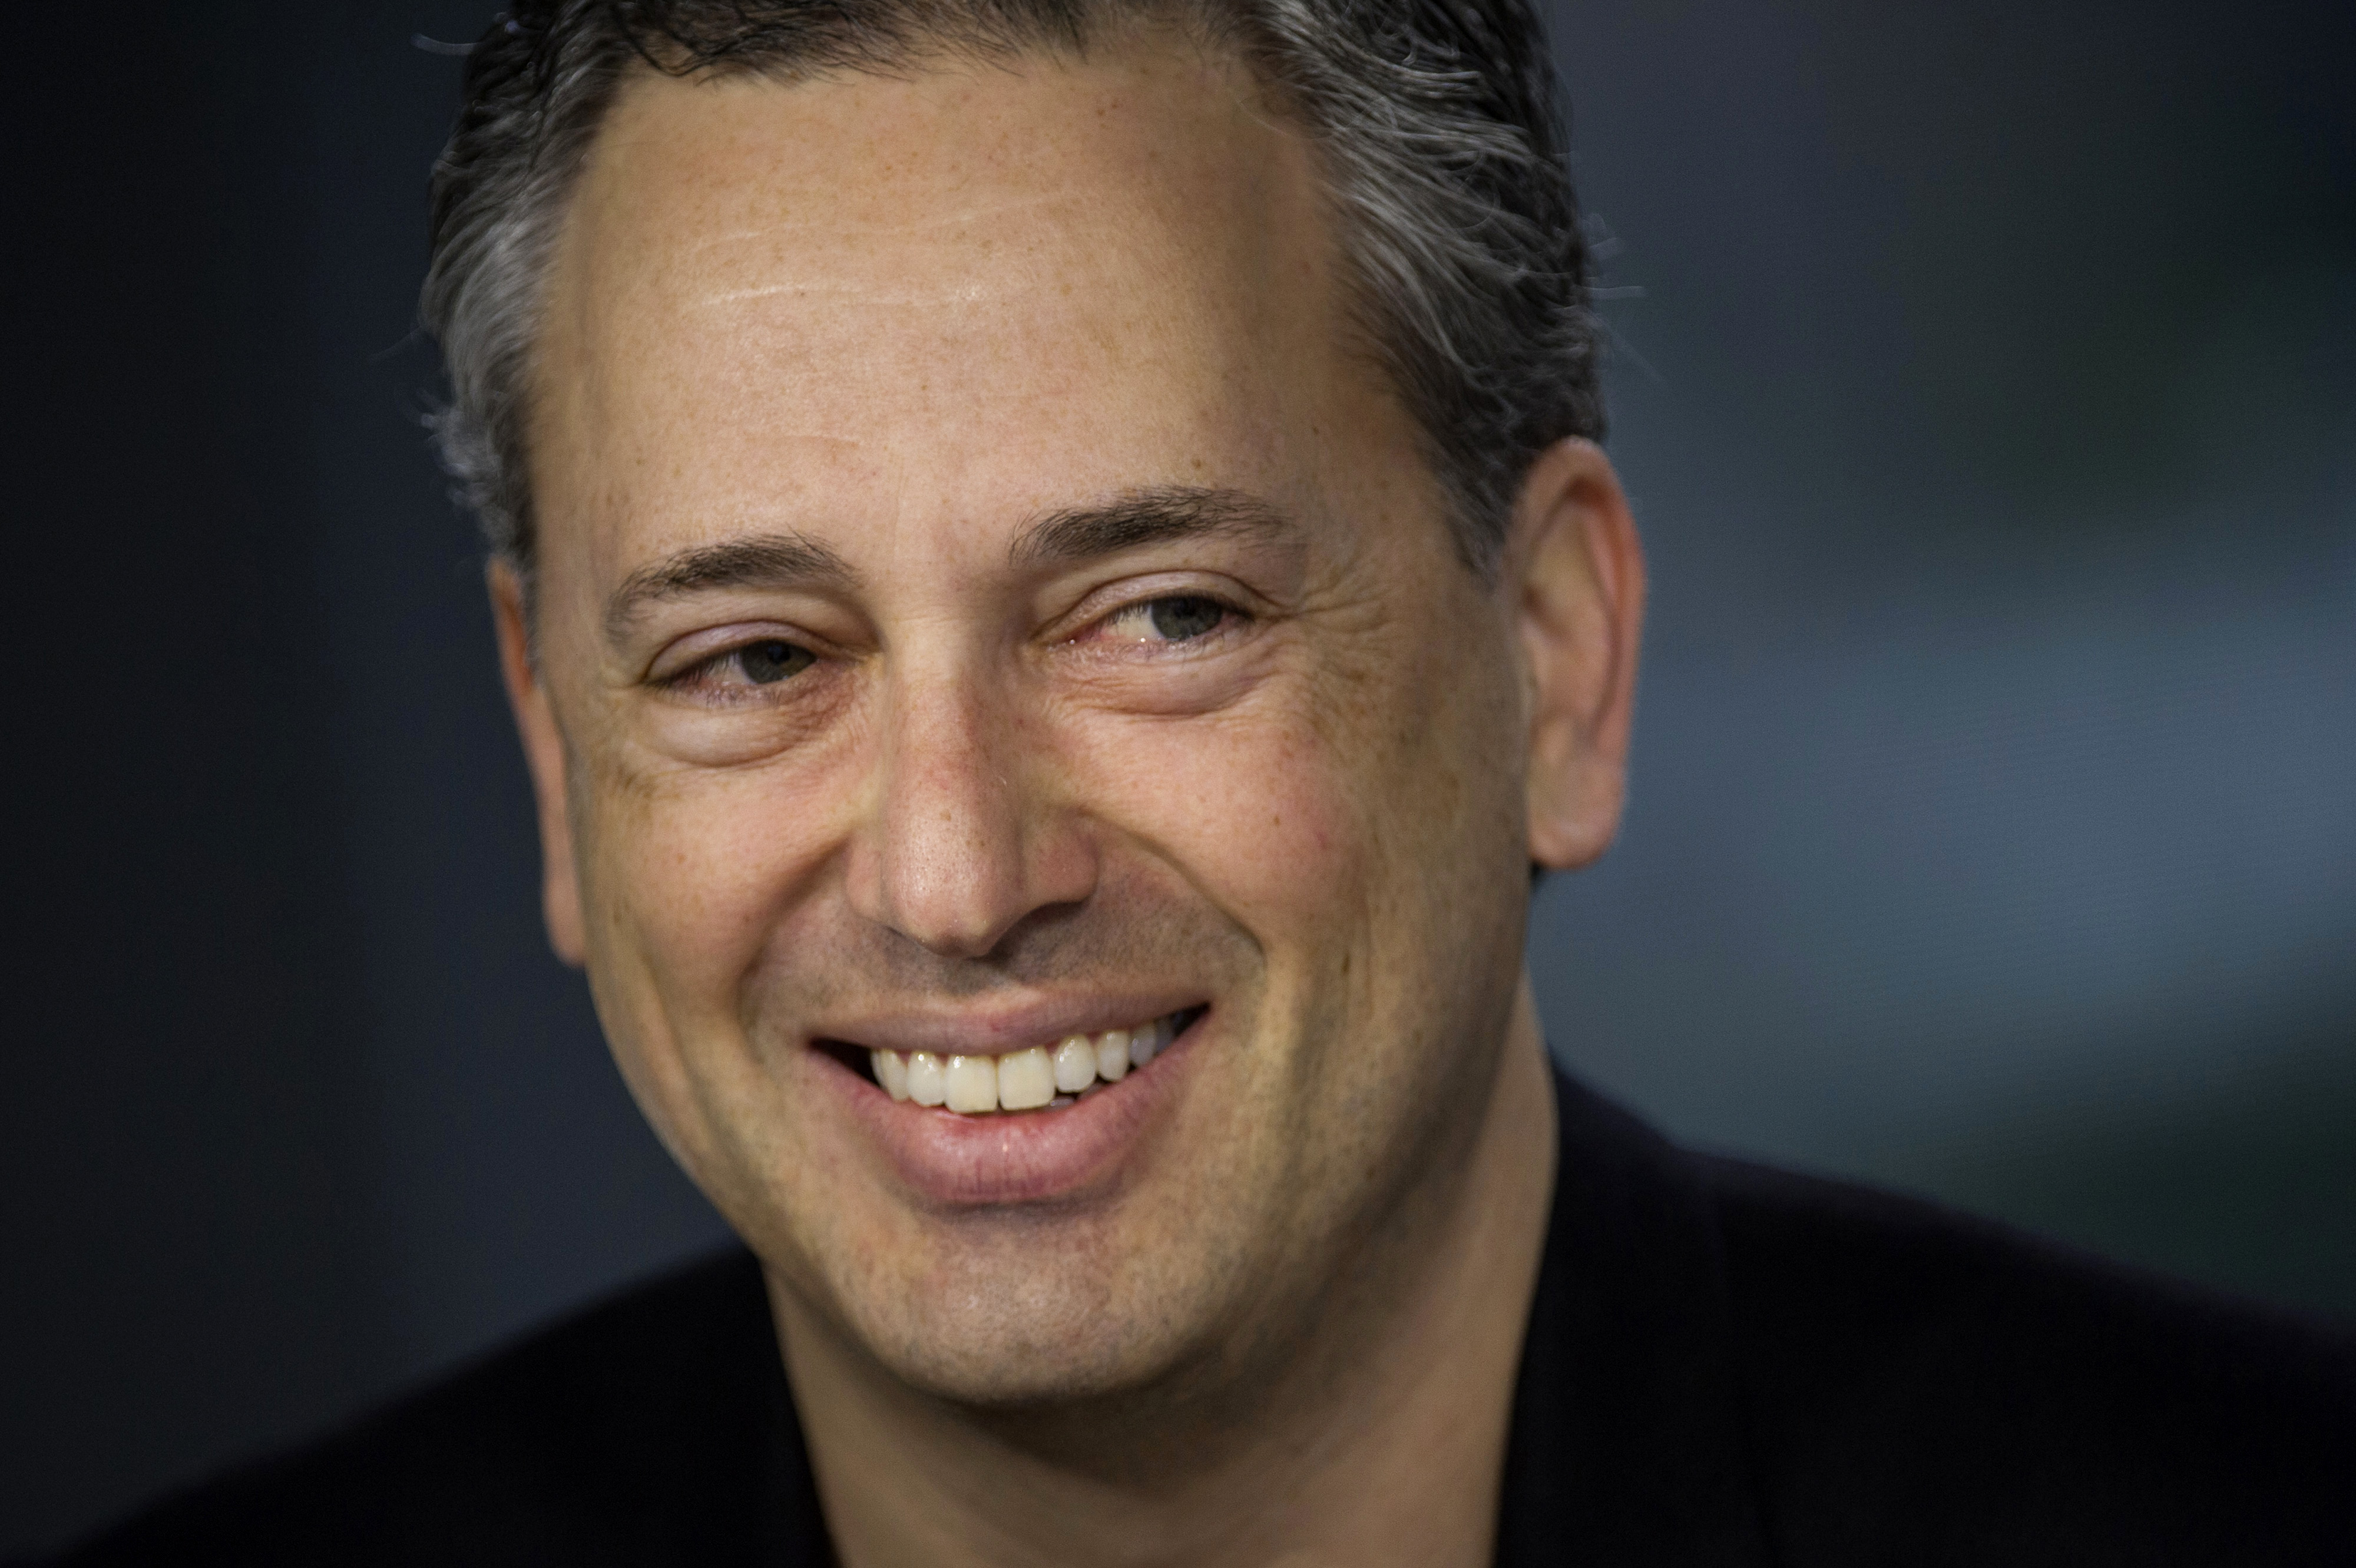 Yammer CEO David Sacks Interview